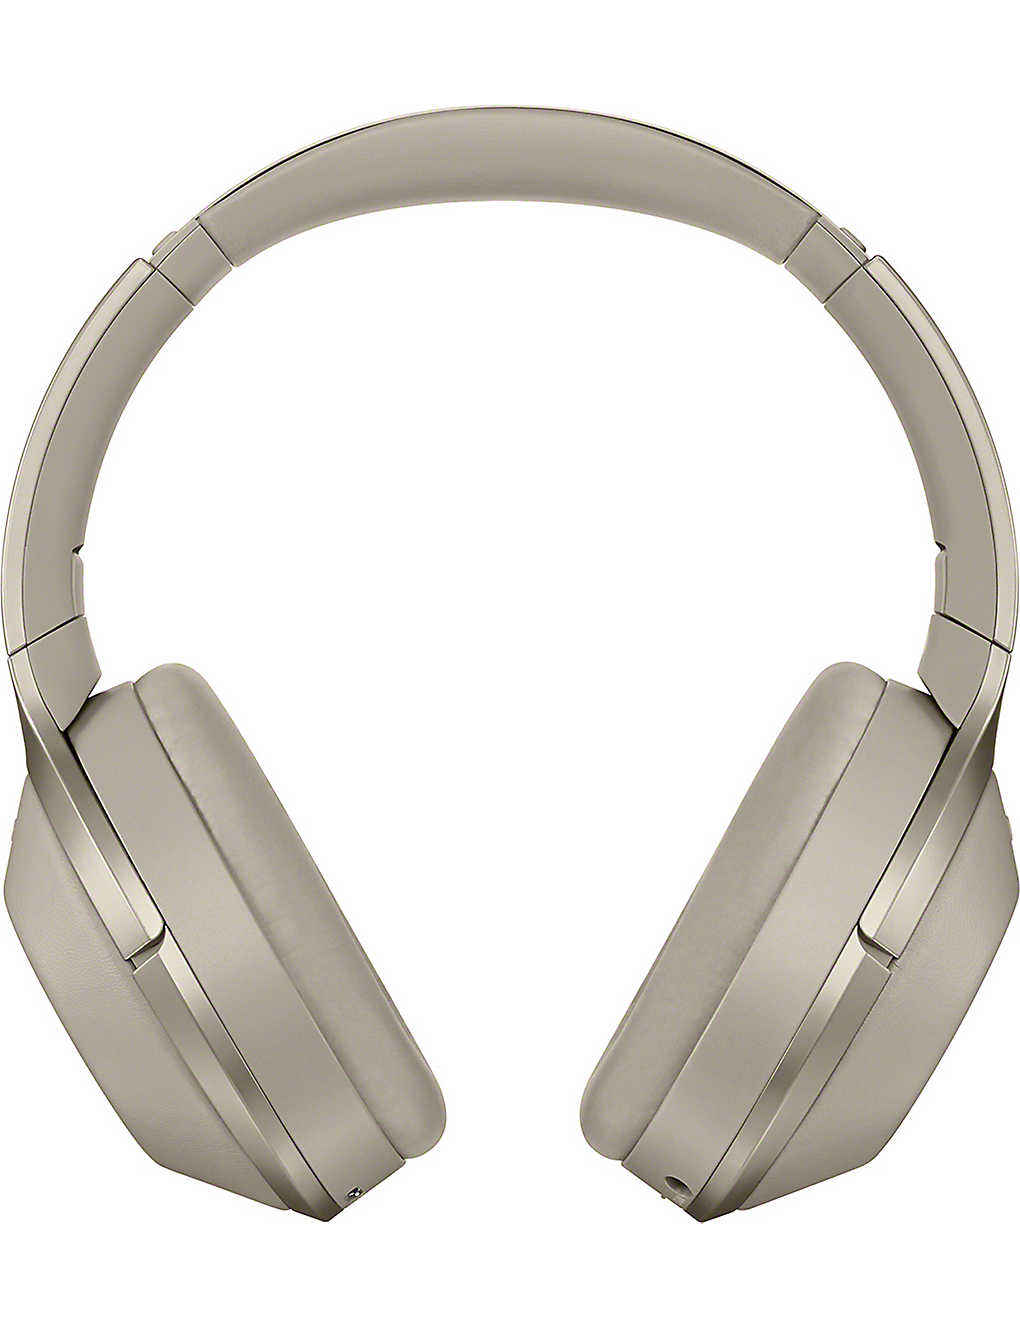 1a50c2fcce1 SONY - MDR-1000X Wireless Noise Cancelling Headphones | Selfridges.com